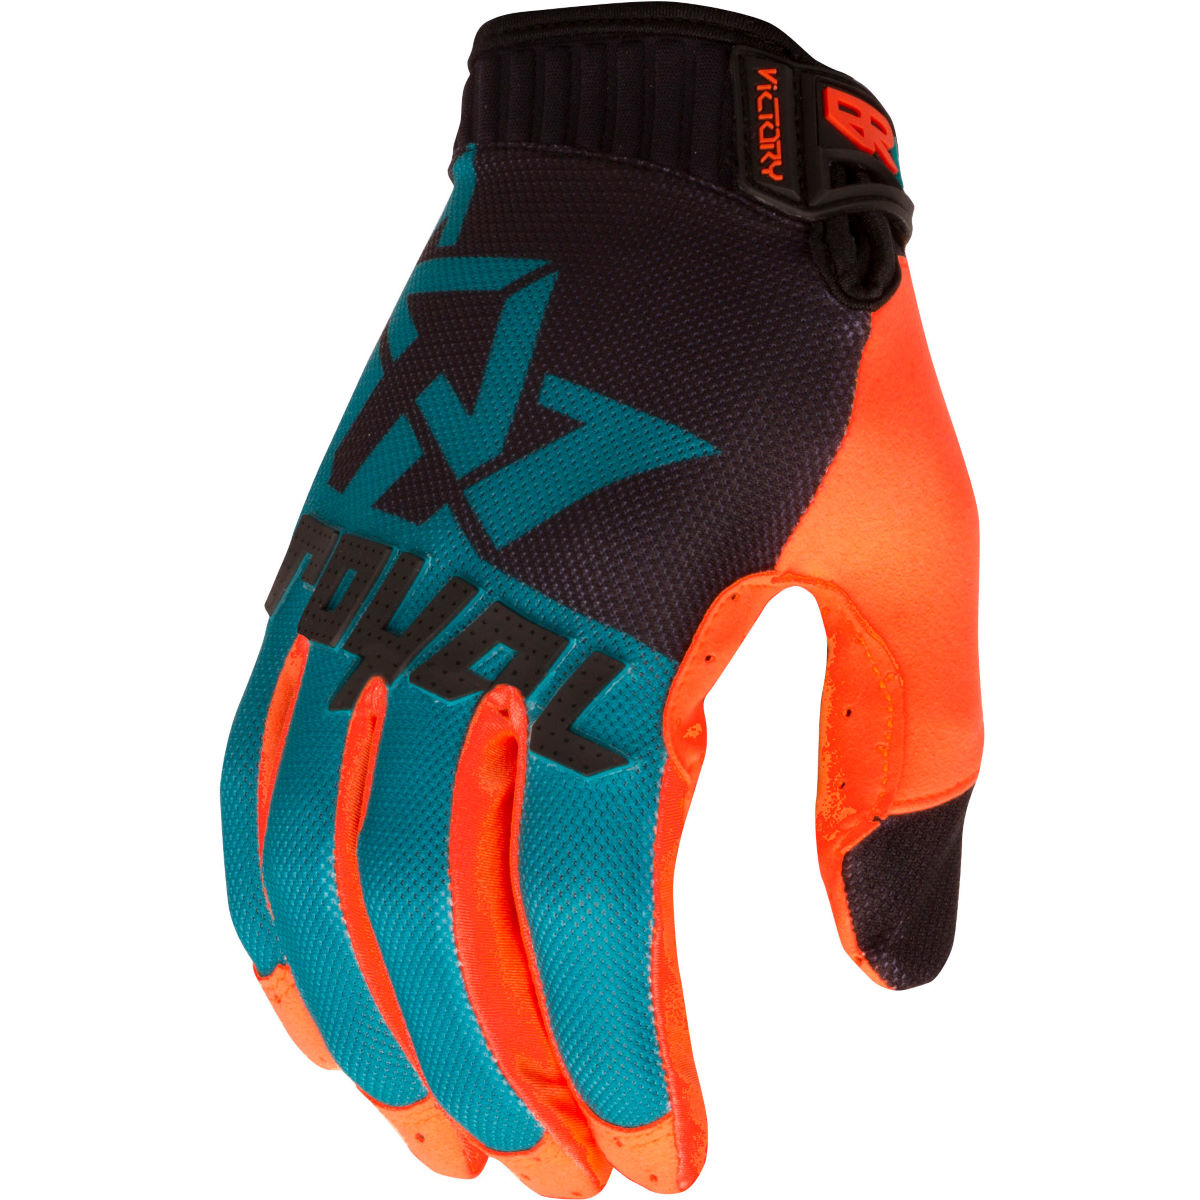 Royal Victory Glove - Guantes largos